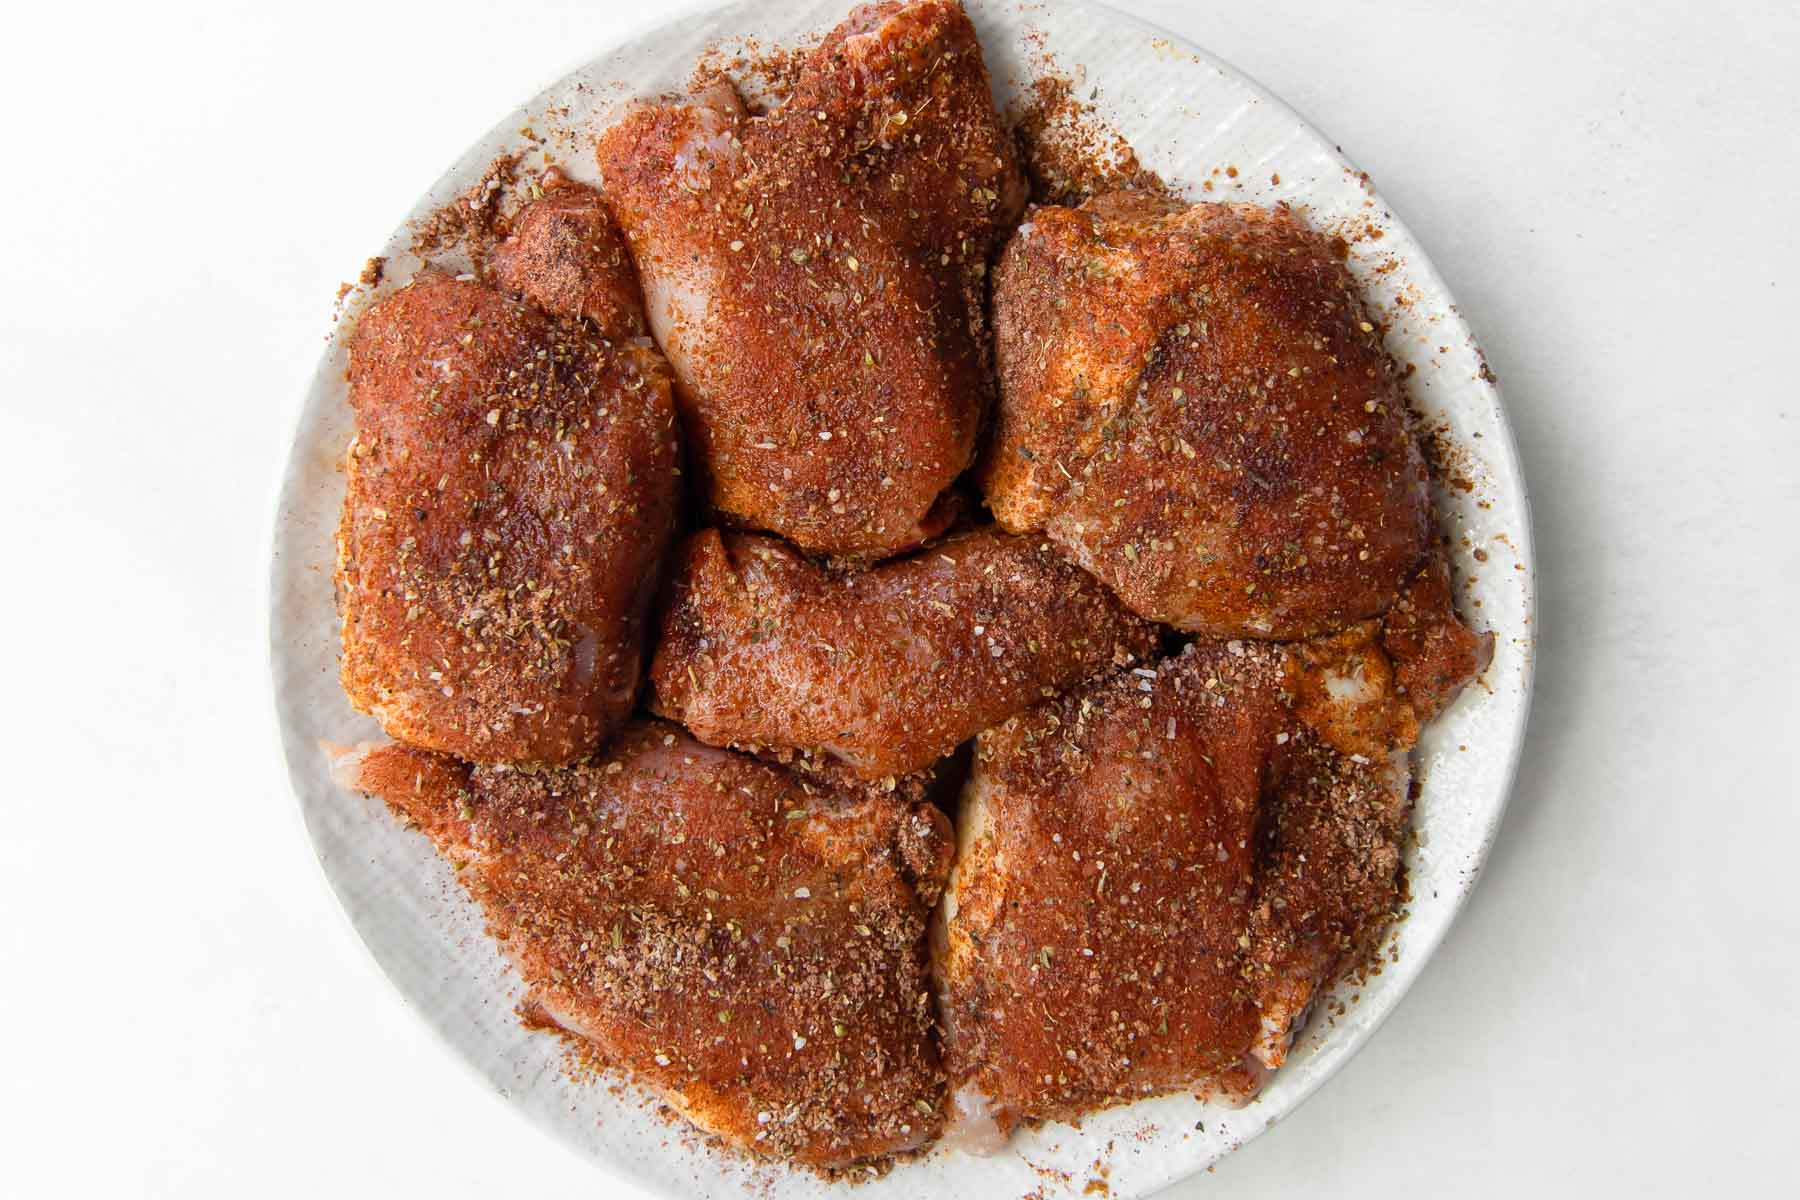 chicken thighs coated with seasoning